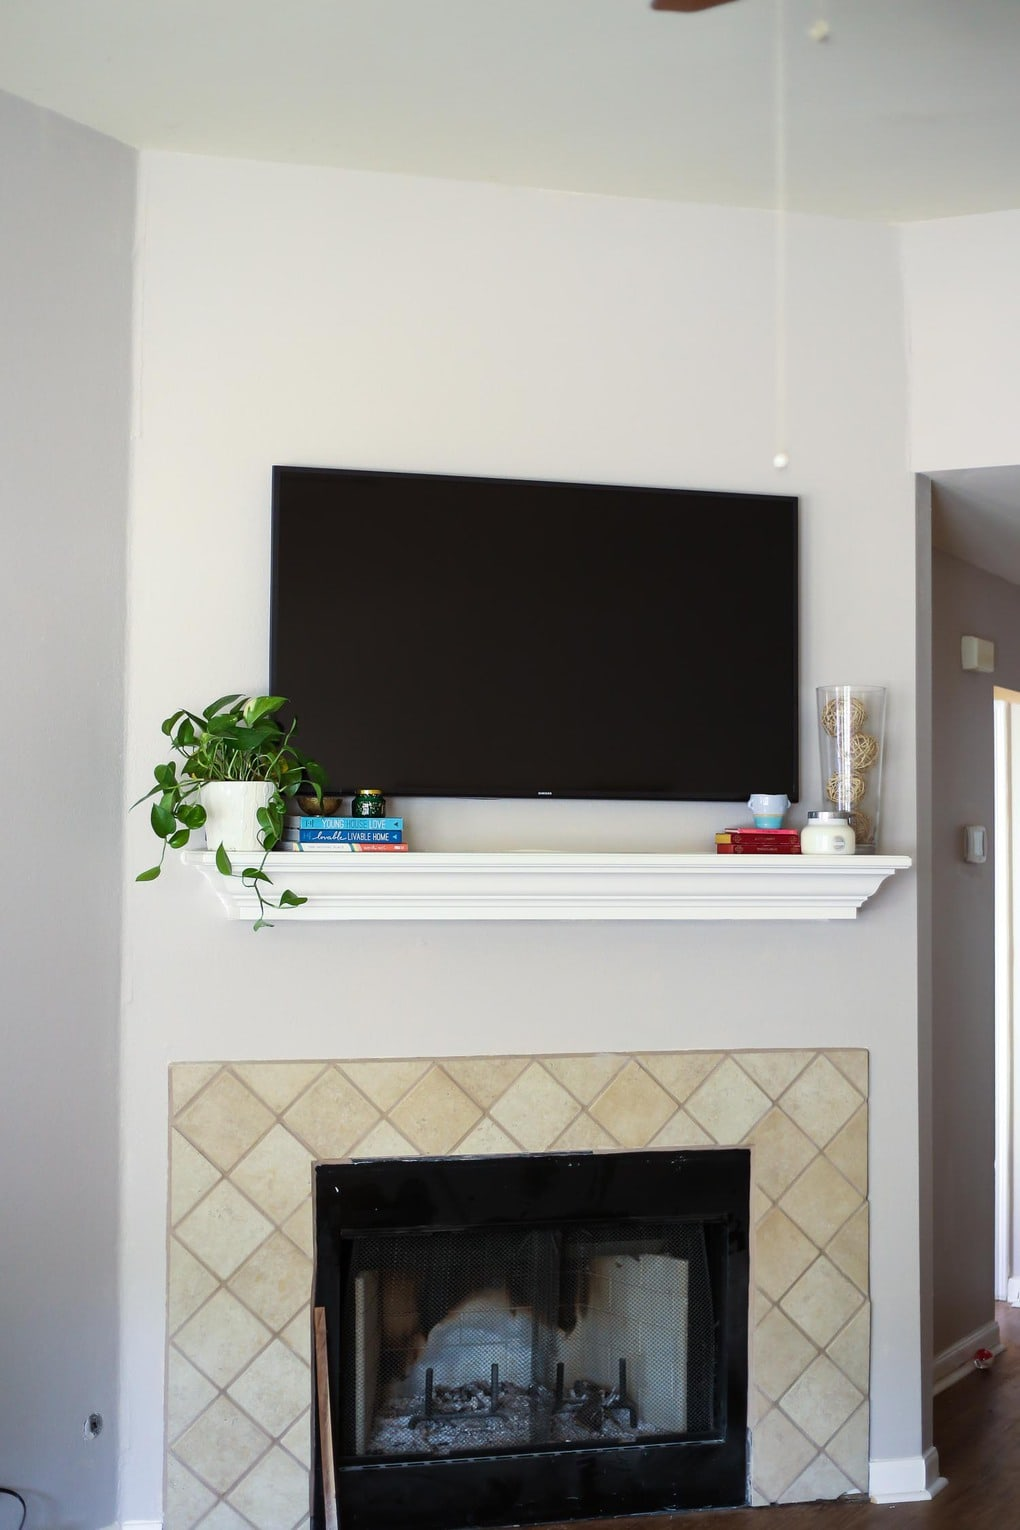 How to decorate a mantel with a television love - Mantel decor ideas with tv ...